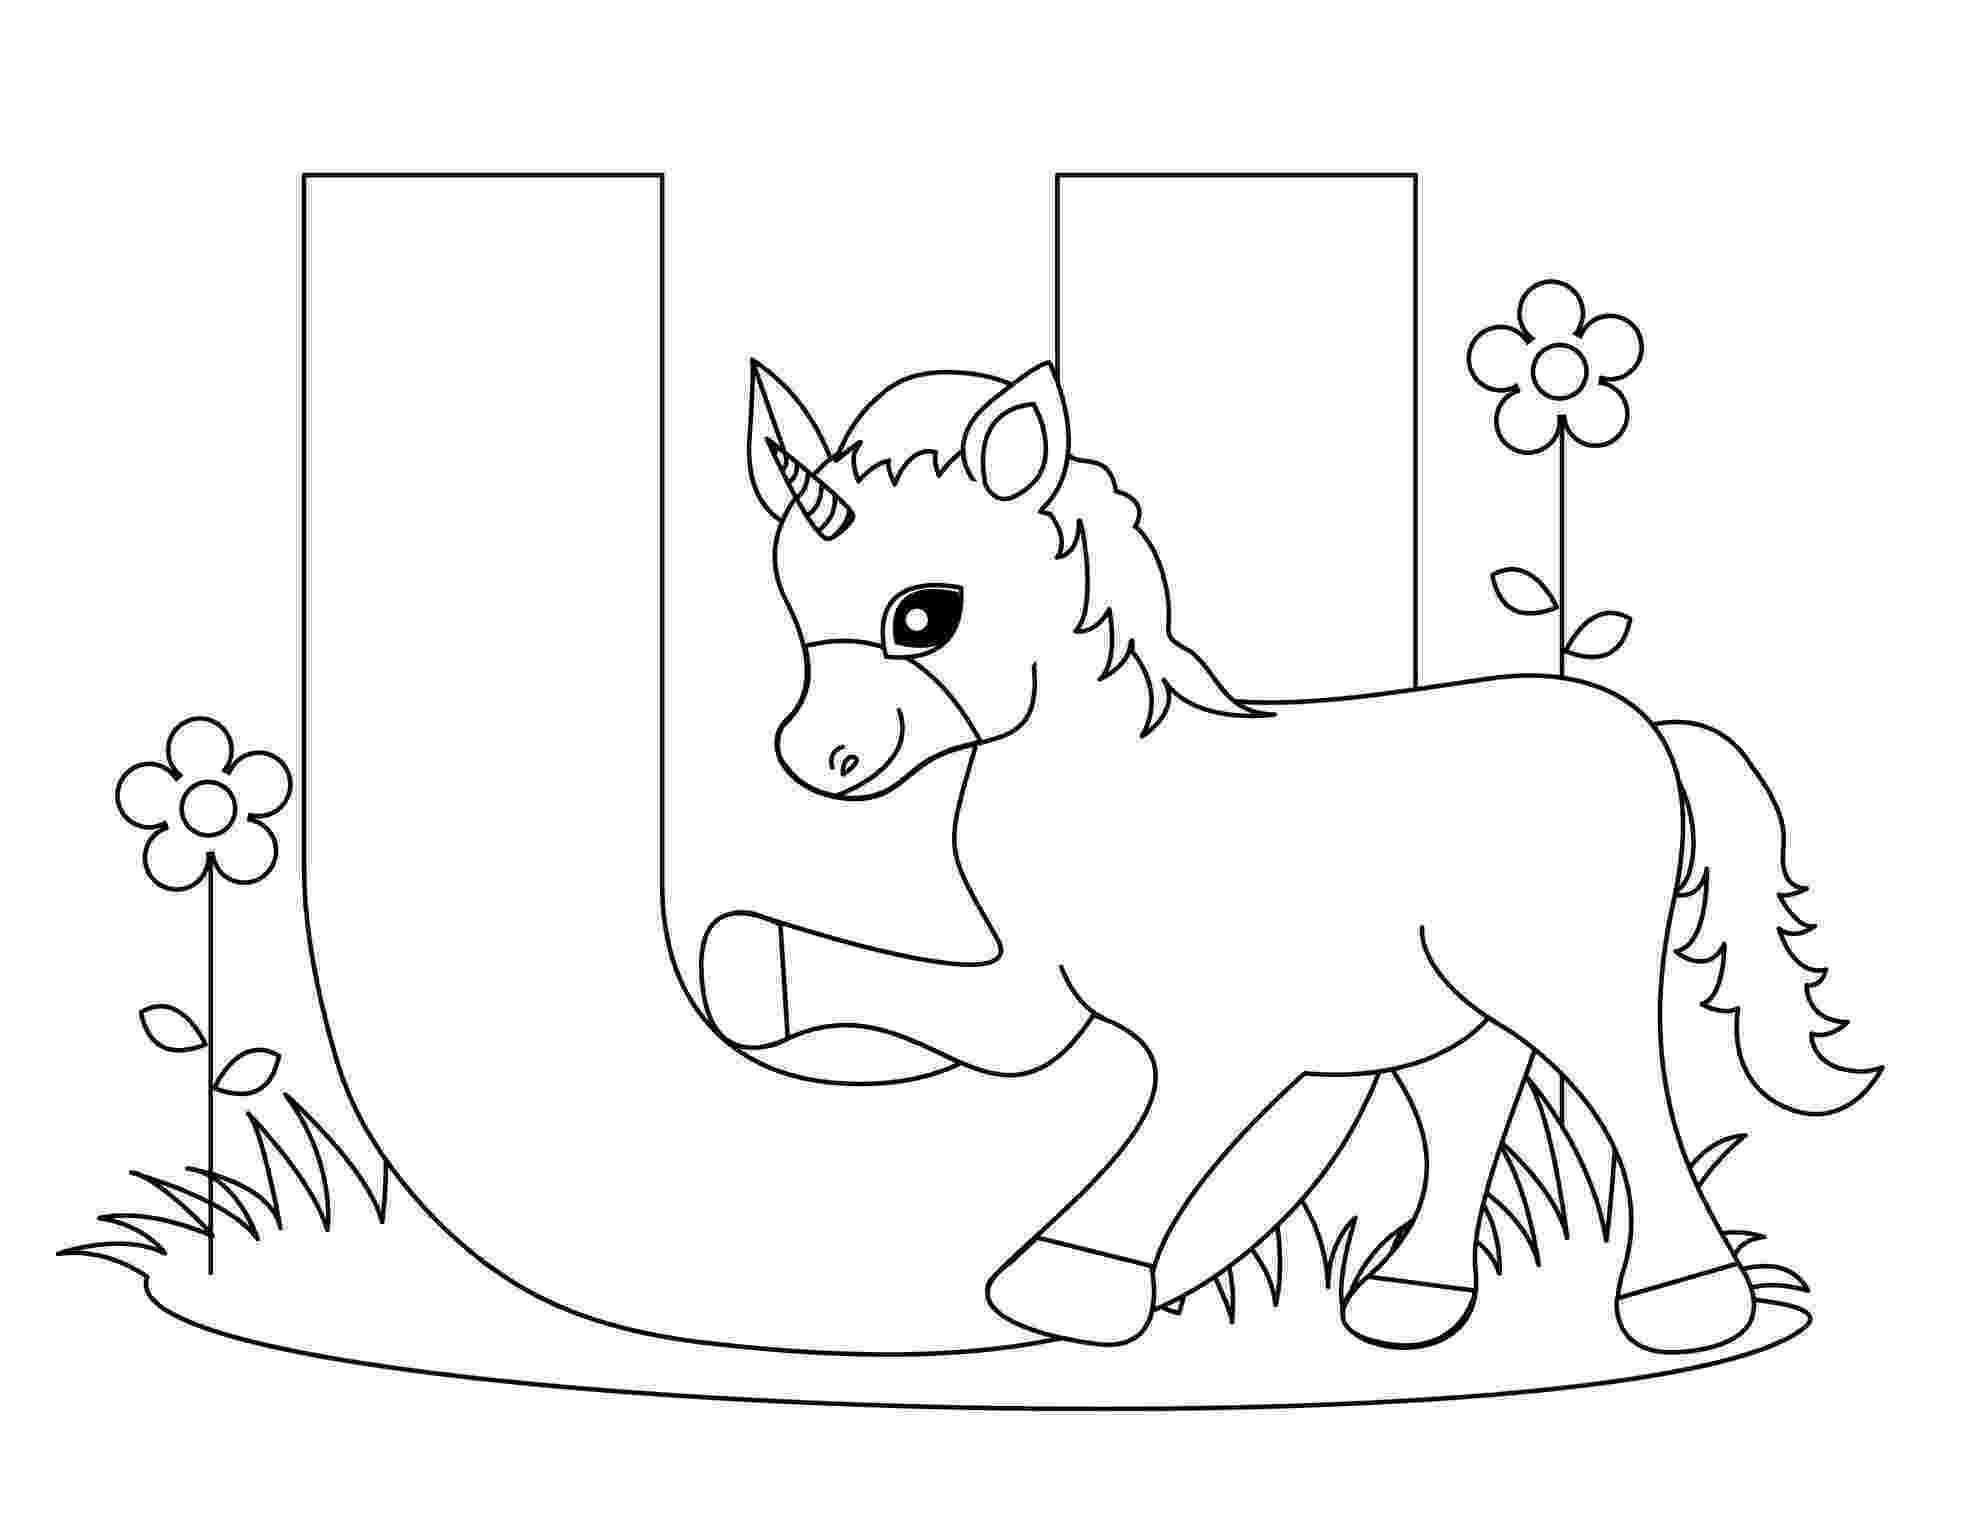 coloring pages of letters free printable alphabet coloring pages for kids best of letters pages coloring